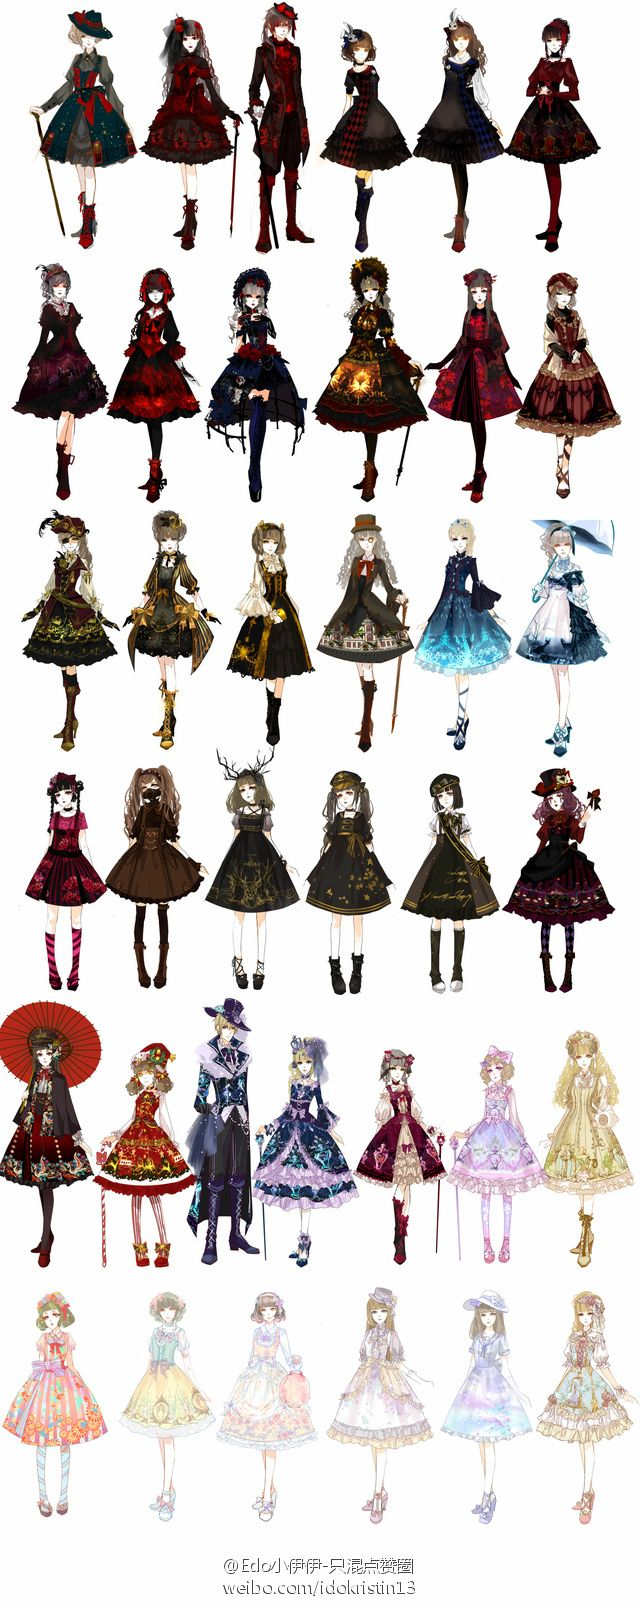 Lolita Dresses This Style Overlaps A Lot With Steampunk